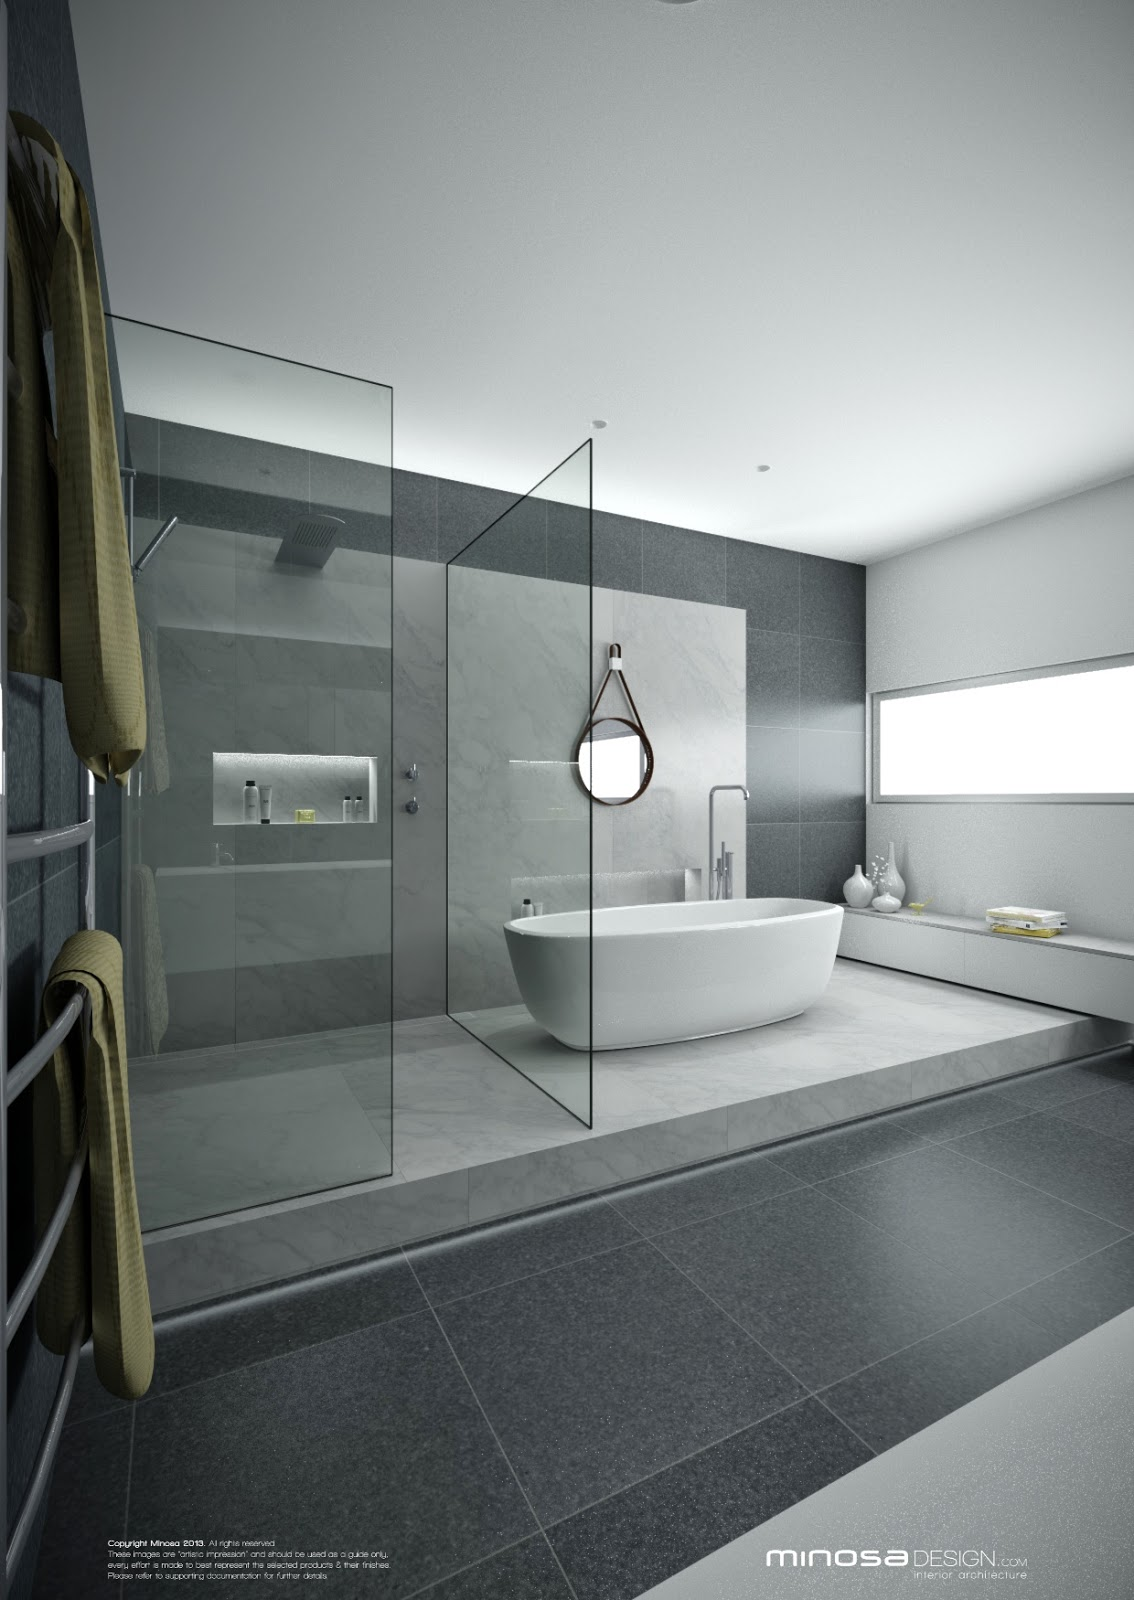 Minosa a real showstopper modern bathroom Designs for bathrooms with shower